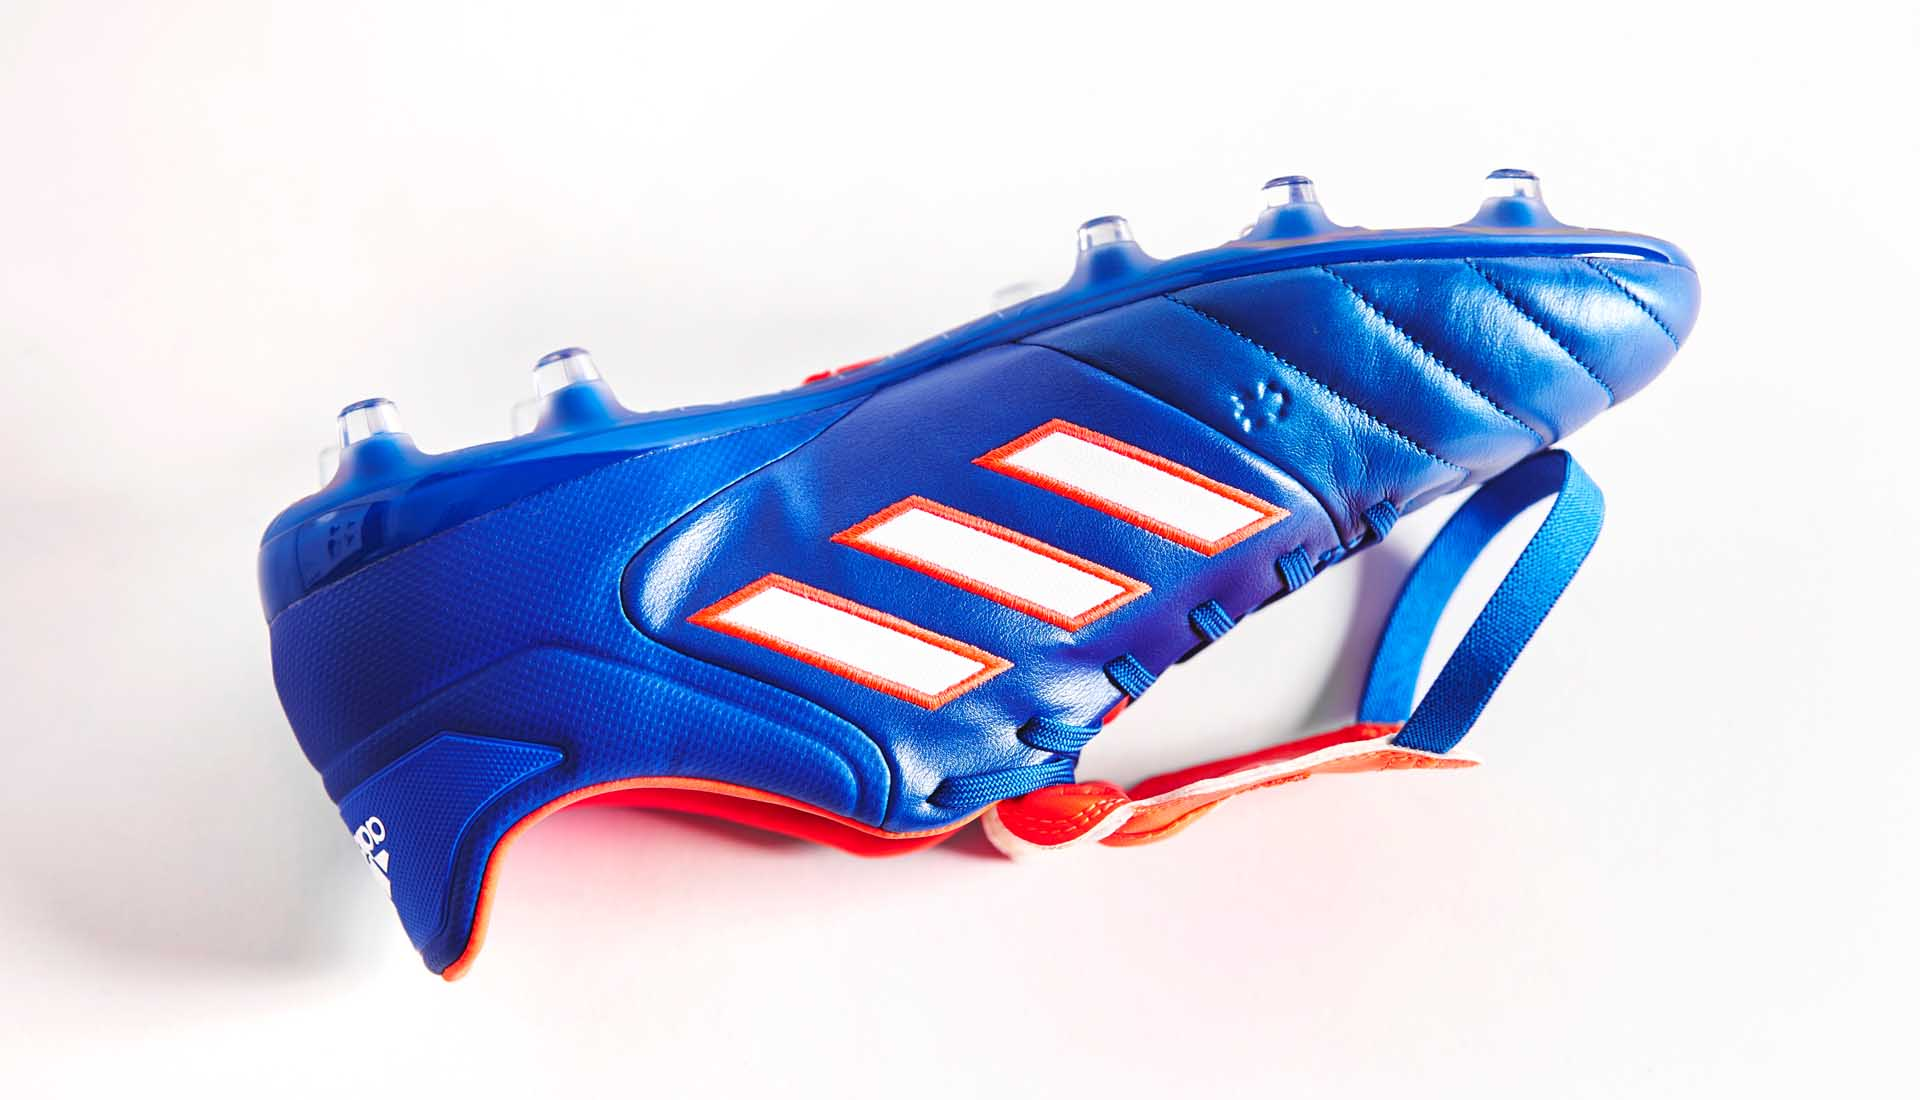 adidas-copa-gloro-17-blue-red-5-min.jpg